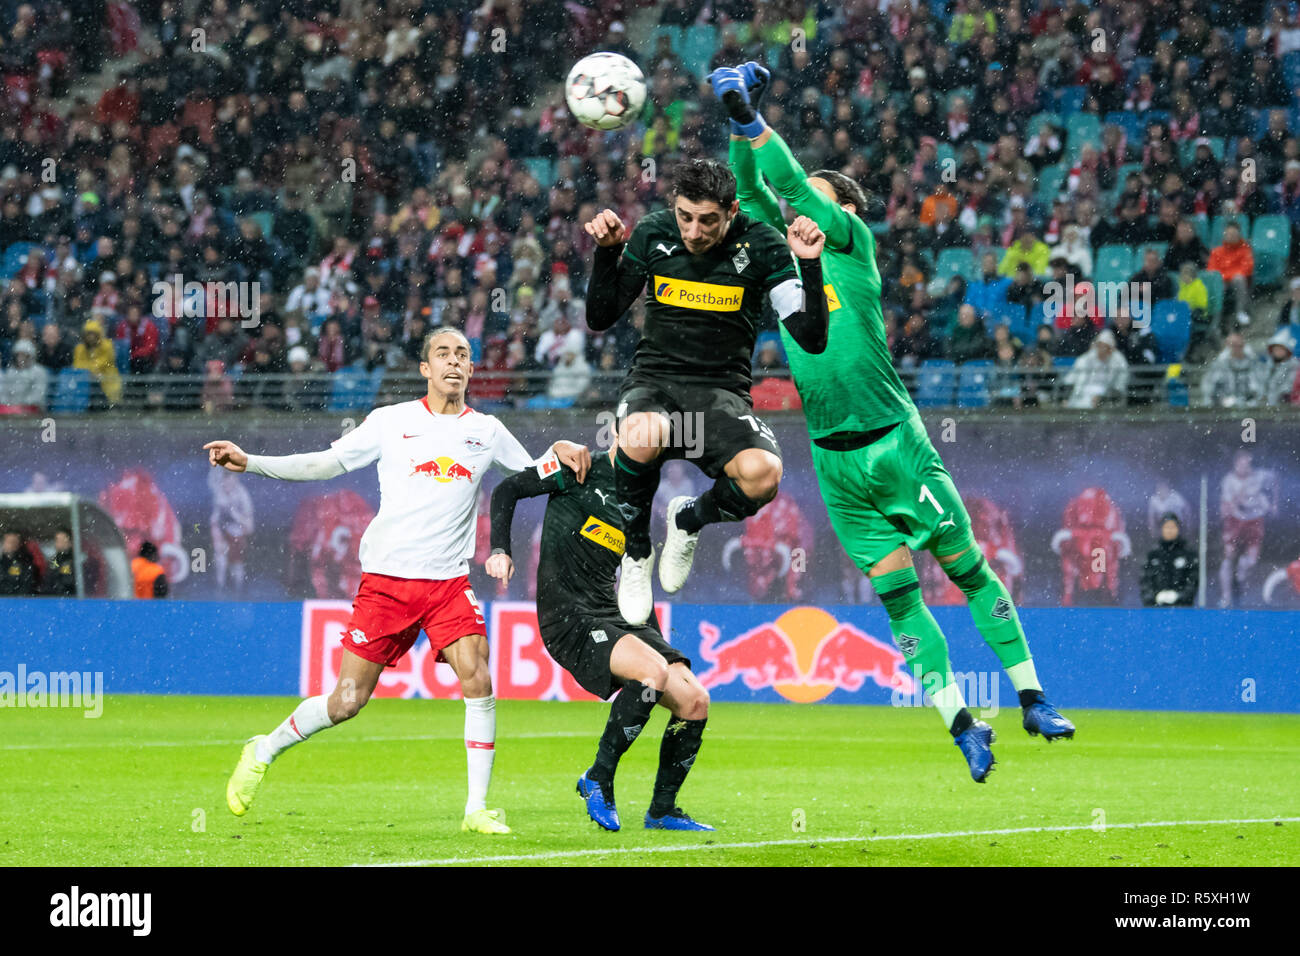 Yann Sommer Goalkeeper High Resolution Stock Photography And Images Alamy